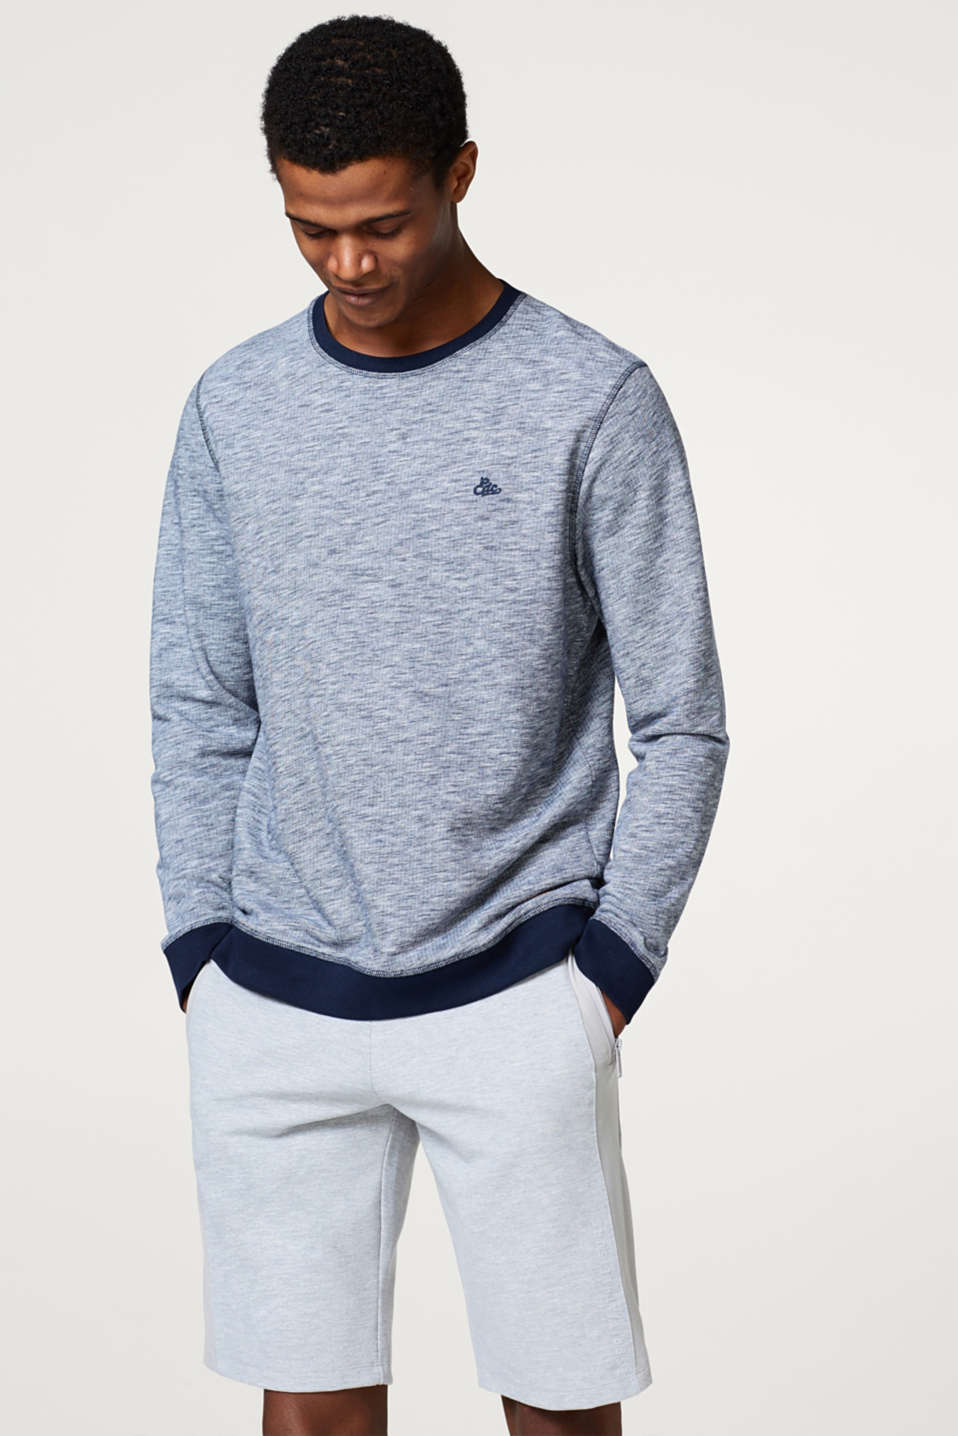 edc - Blended cotton sweatshirt